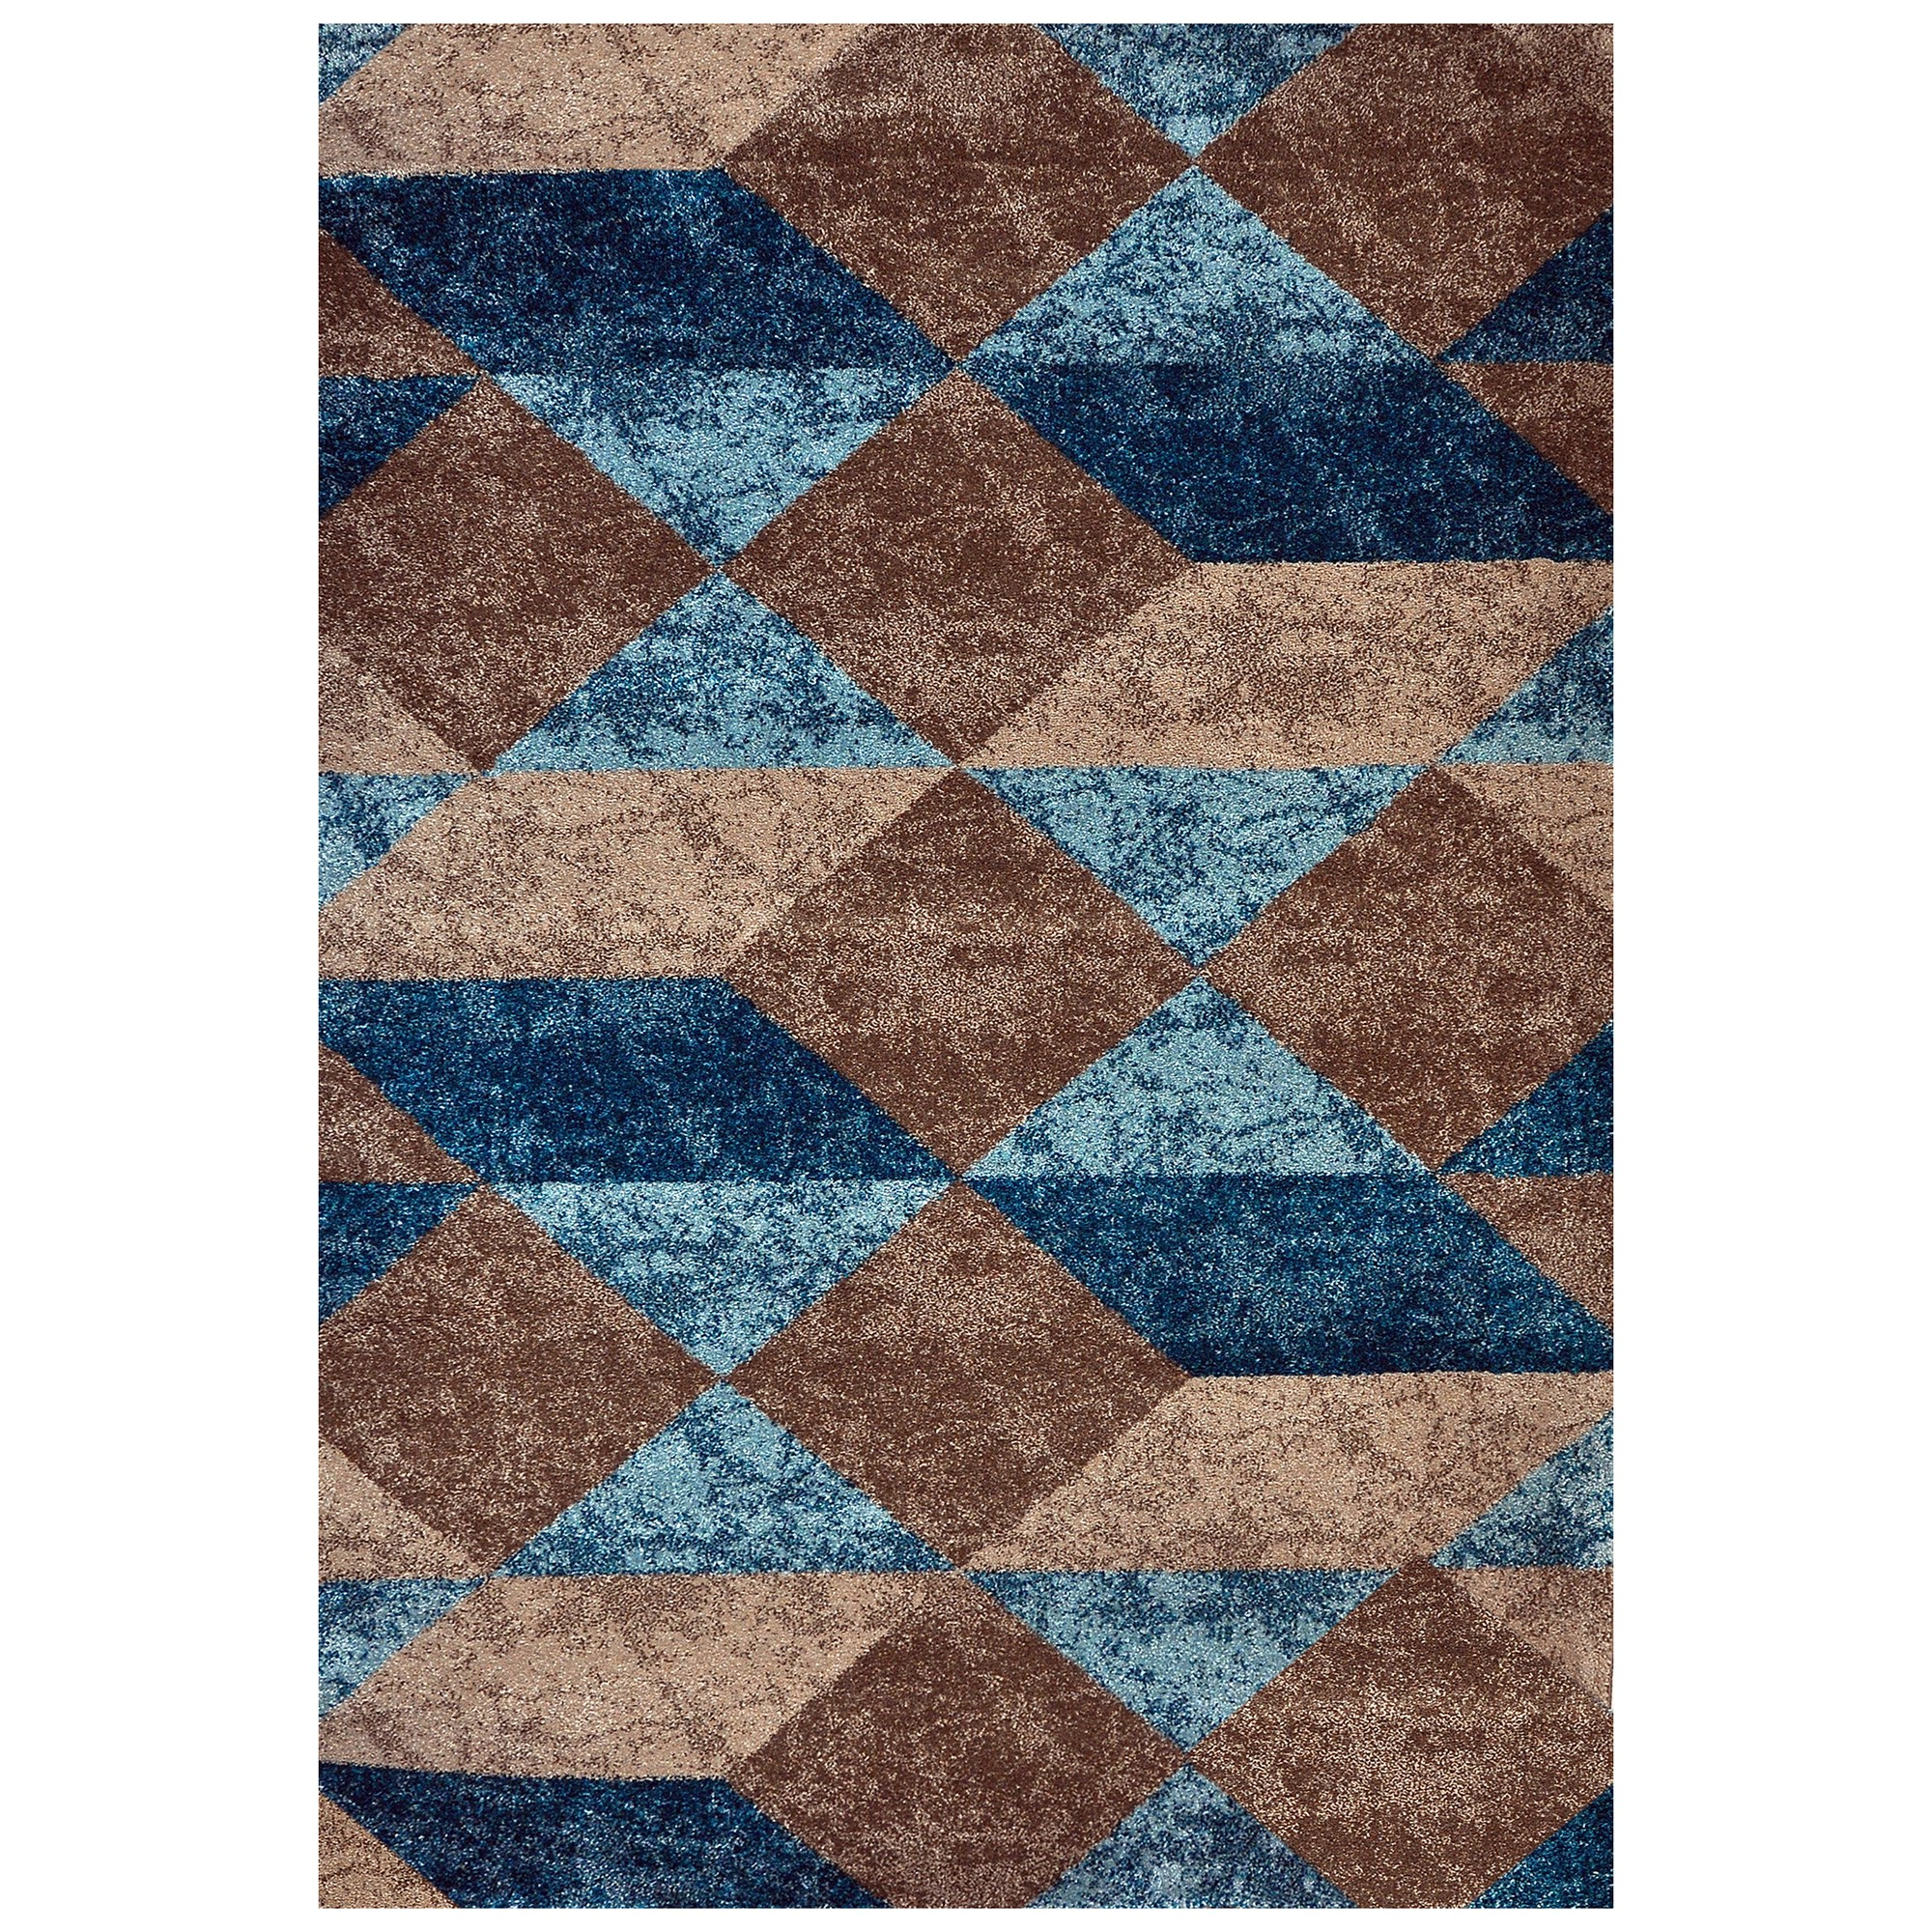 Studio Lathan Turkish Made Modern Rug, 330x240cm, Brown / Blue